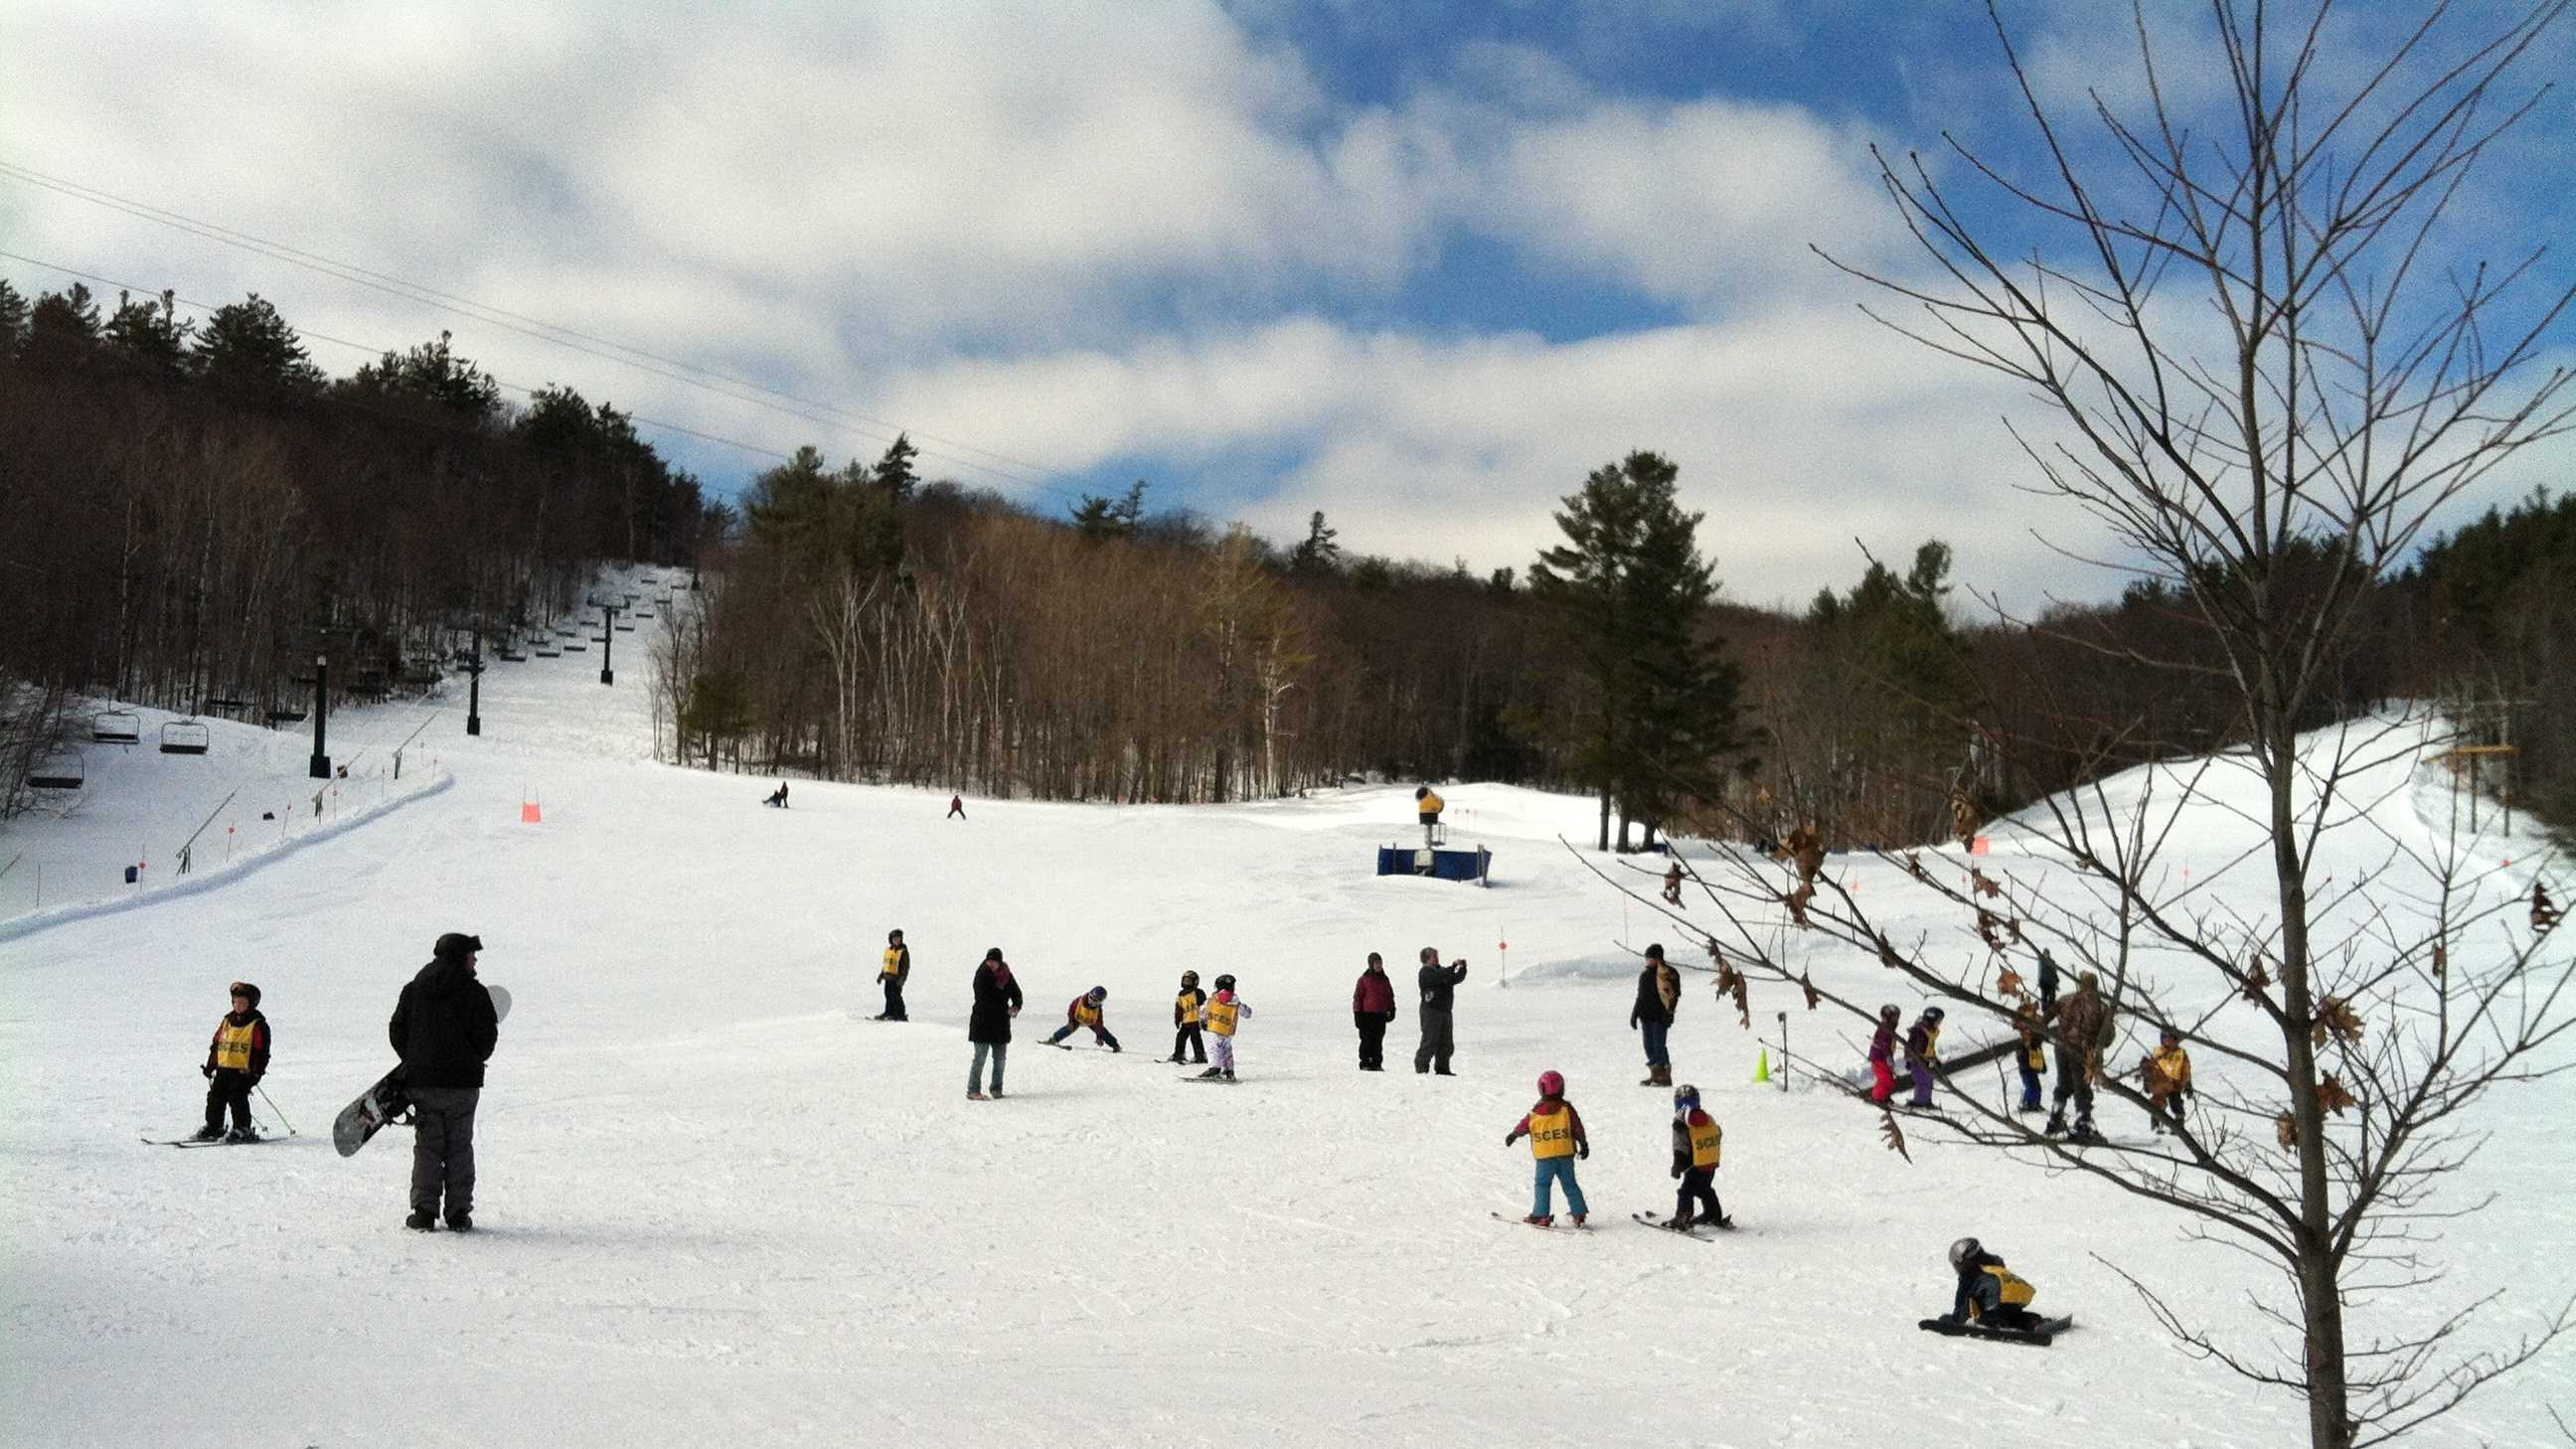 Little skiers learn on the Province Slope at Mount Sunapee in Newbury on Thursday morning just before the start of President's Day Weekend and the two-week February vacation period.